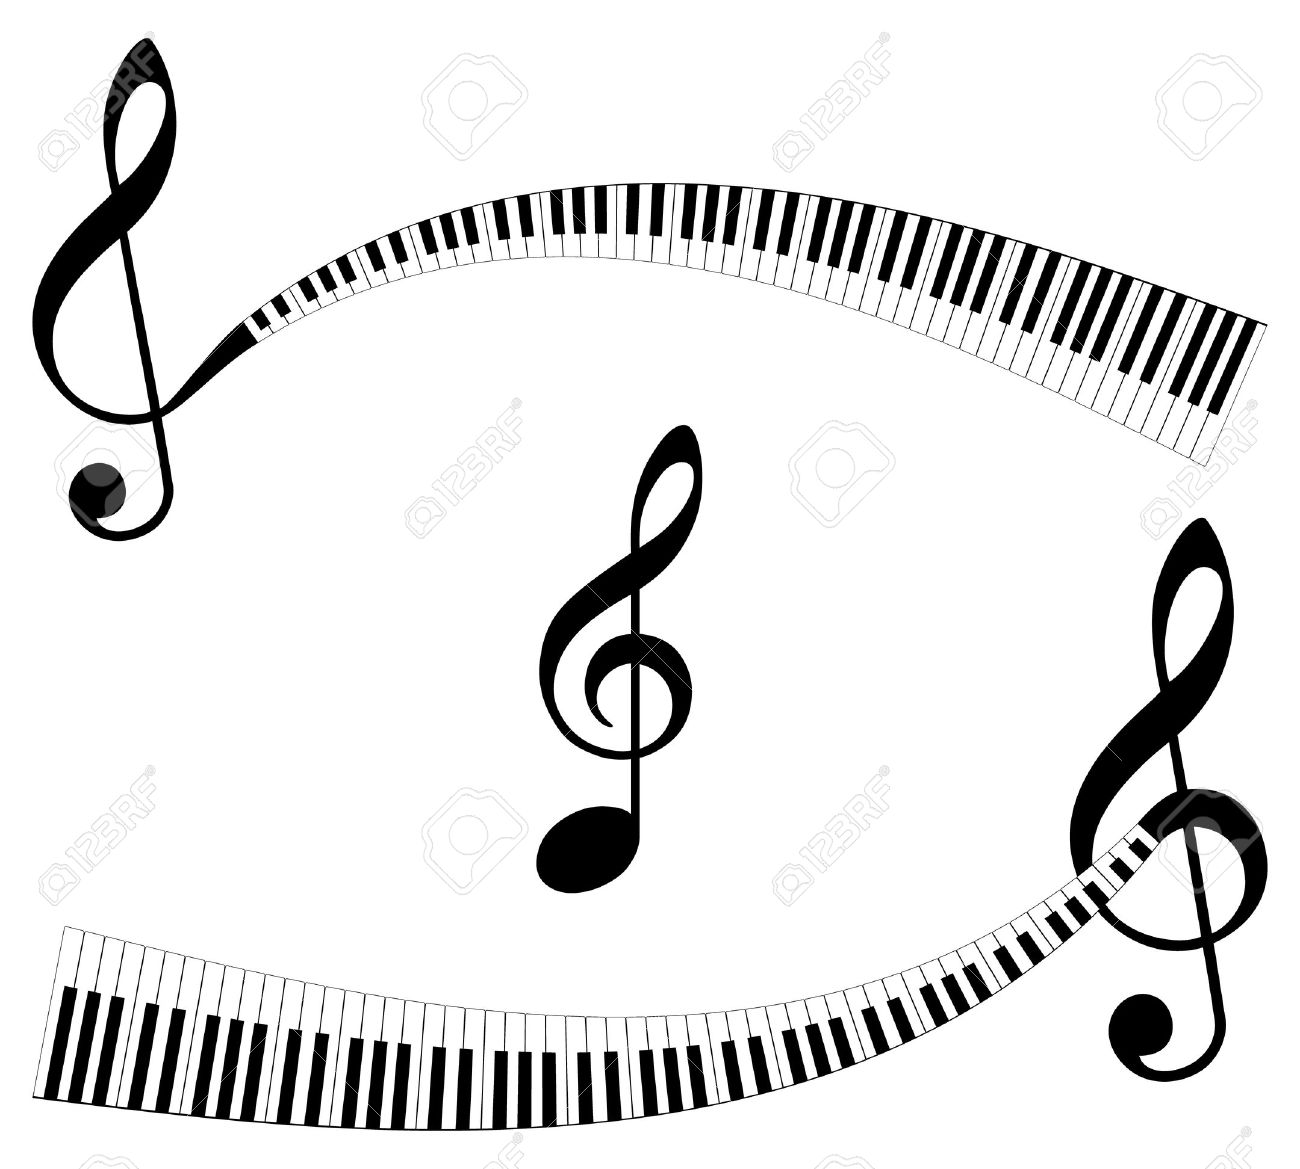 Clef with keyboard as ending set of abstract musical symbols clef with keyboard as ending set of abstract musical symbols isolated music abstract elements biocorpaavc Image collections